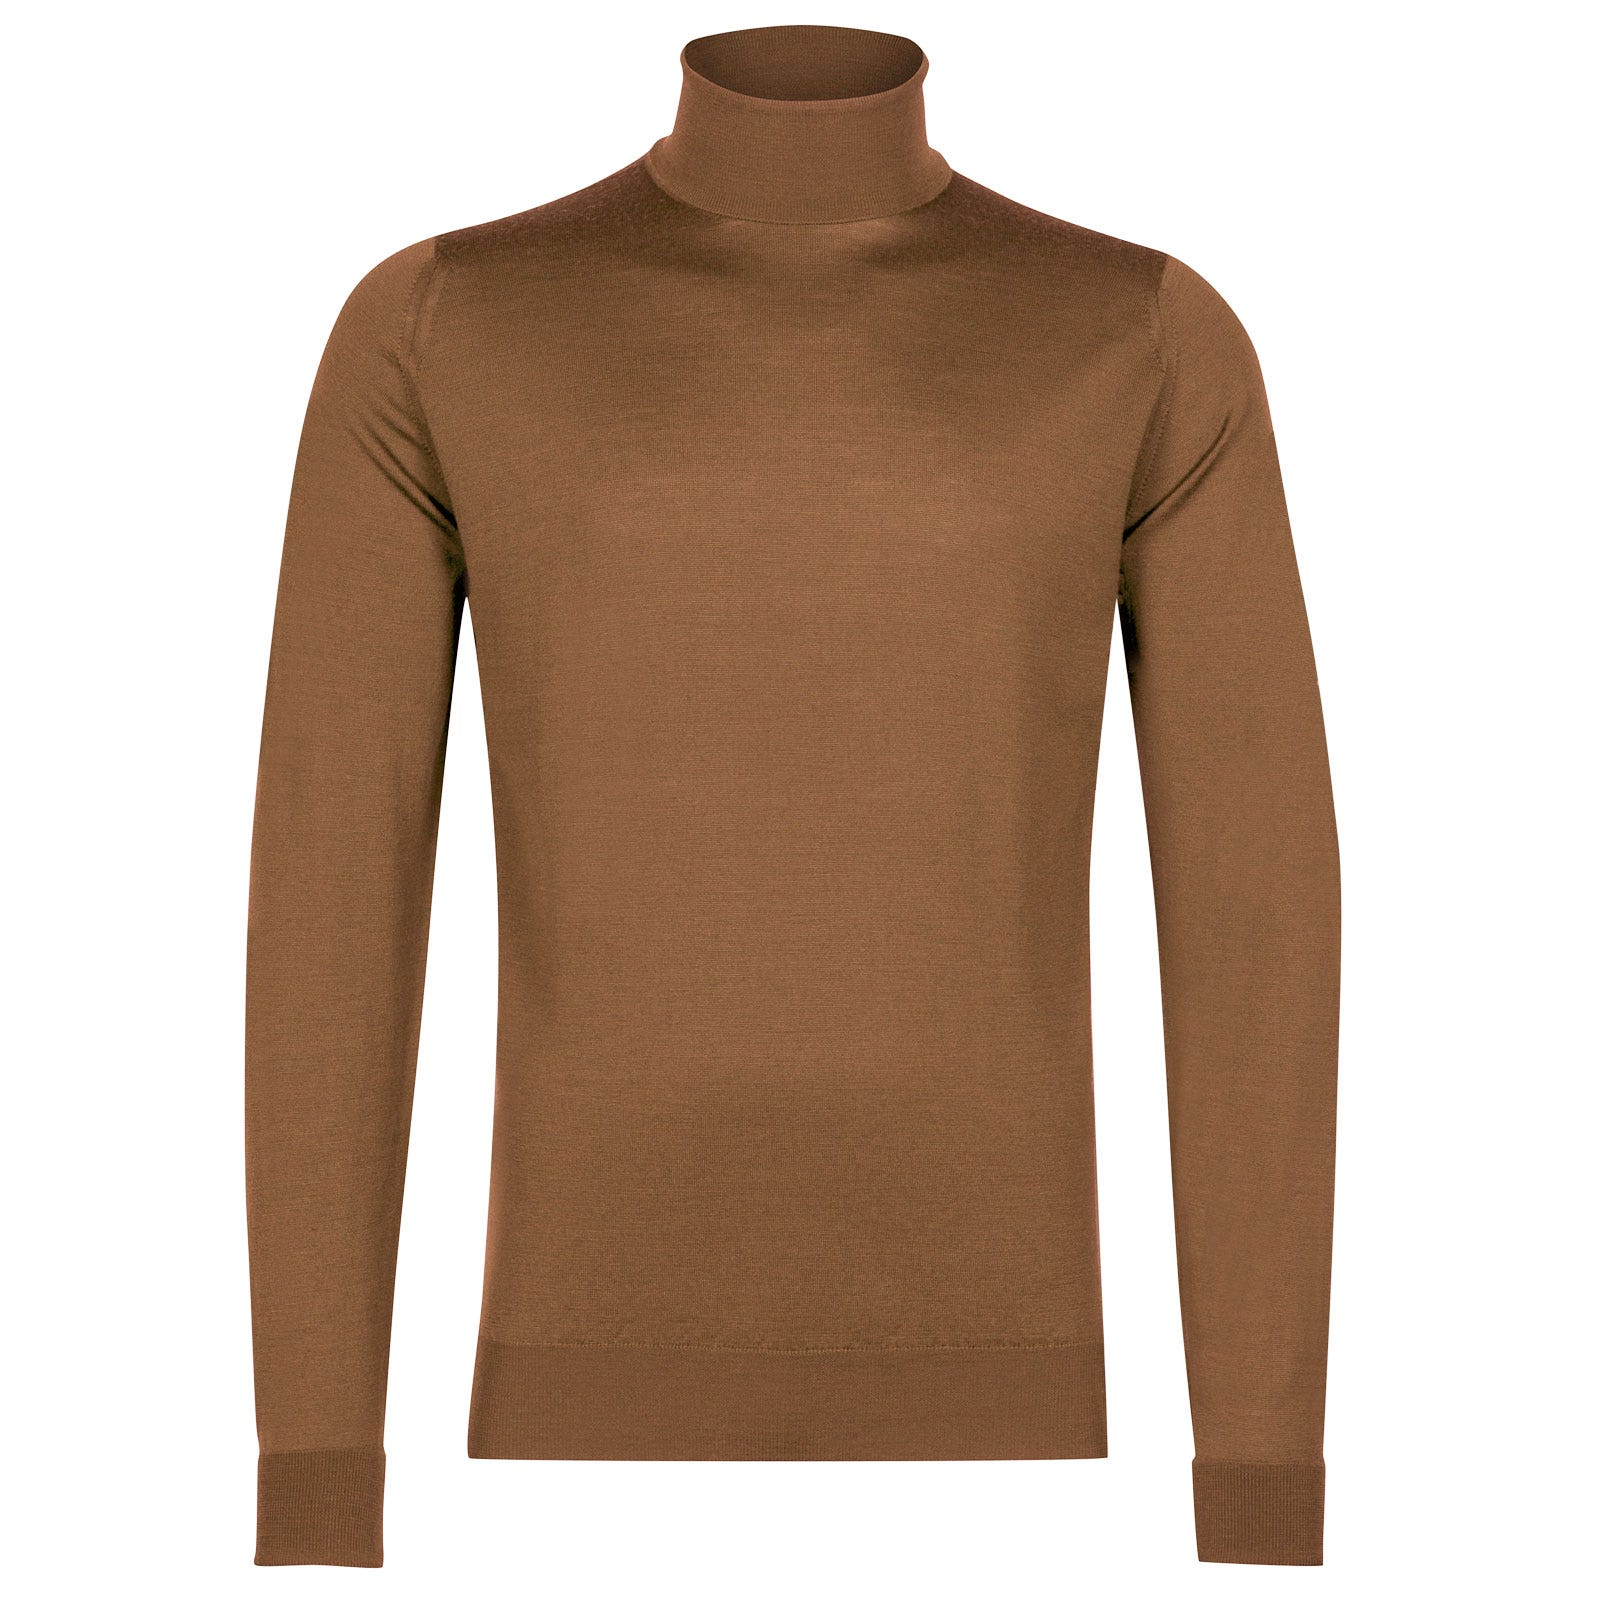 John Smedley richards Merino Wool Pullover in Camel-S